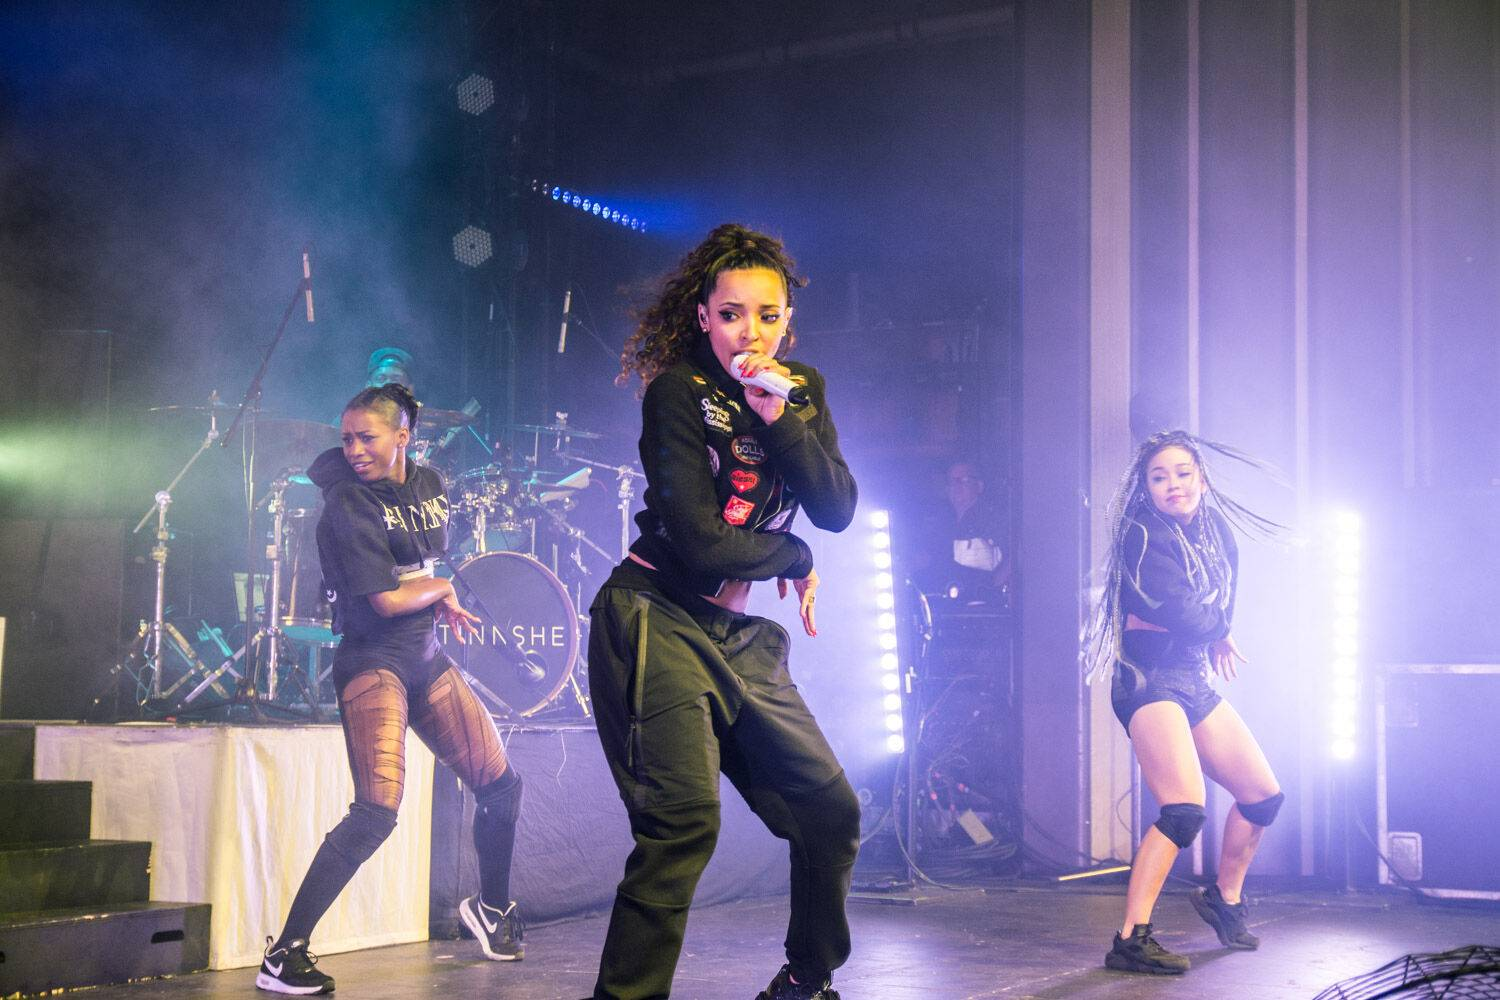 Tinashe at the Vogue Theatre, Vancouver, Apr. 10 2016. Pavel Boiko photo.